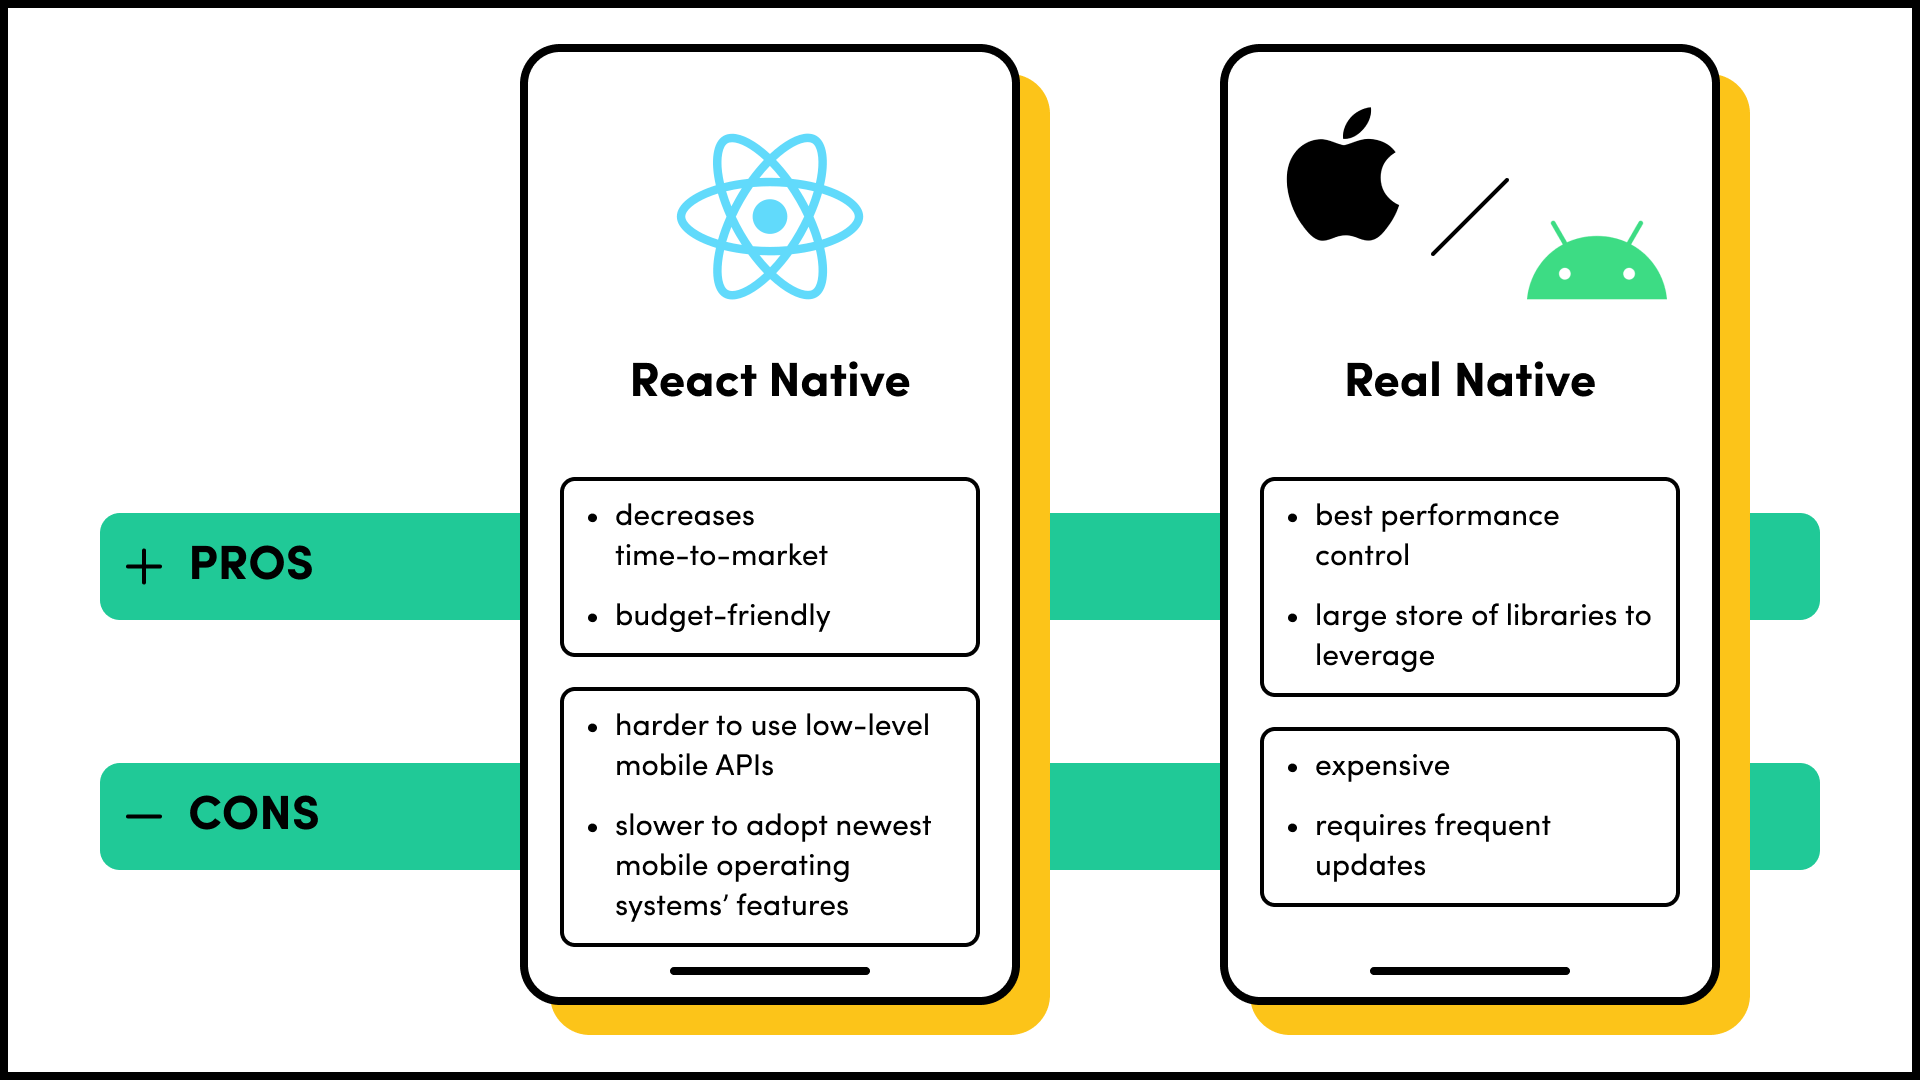 React Native vs Real Native comparison, pros and cons